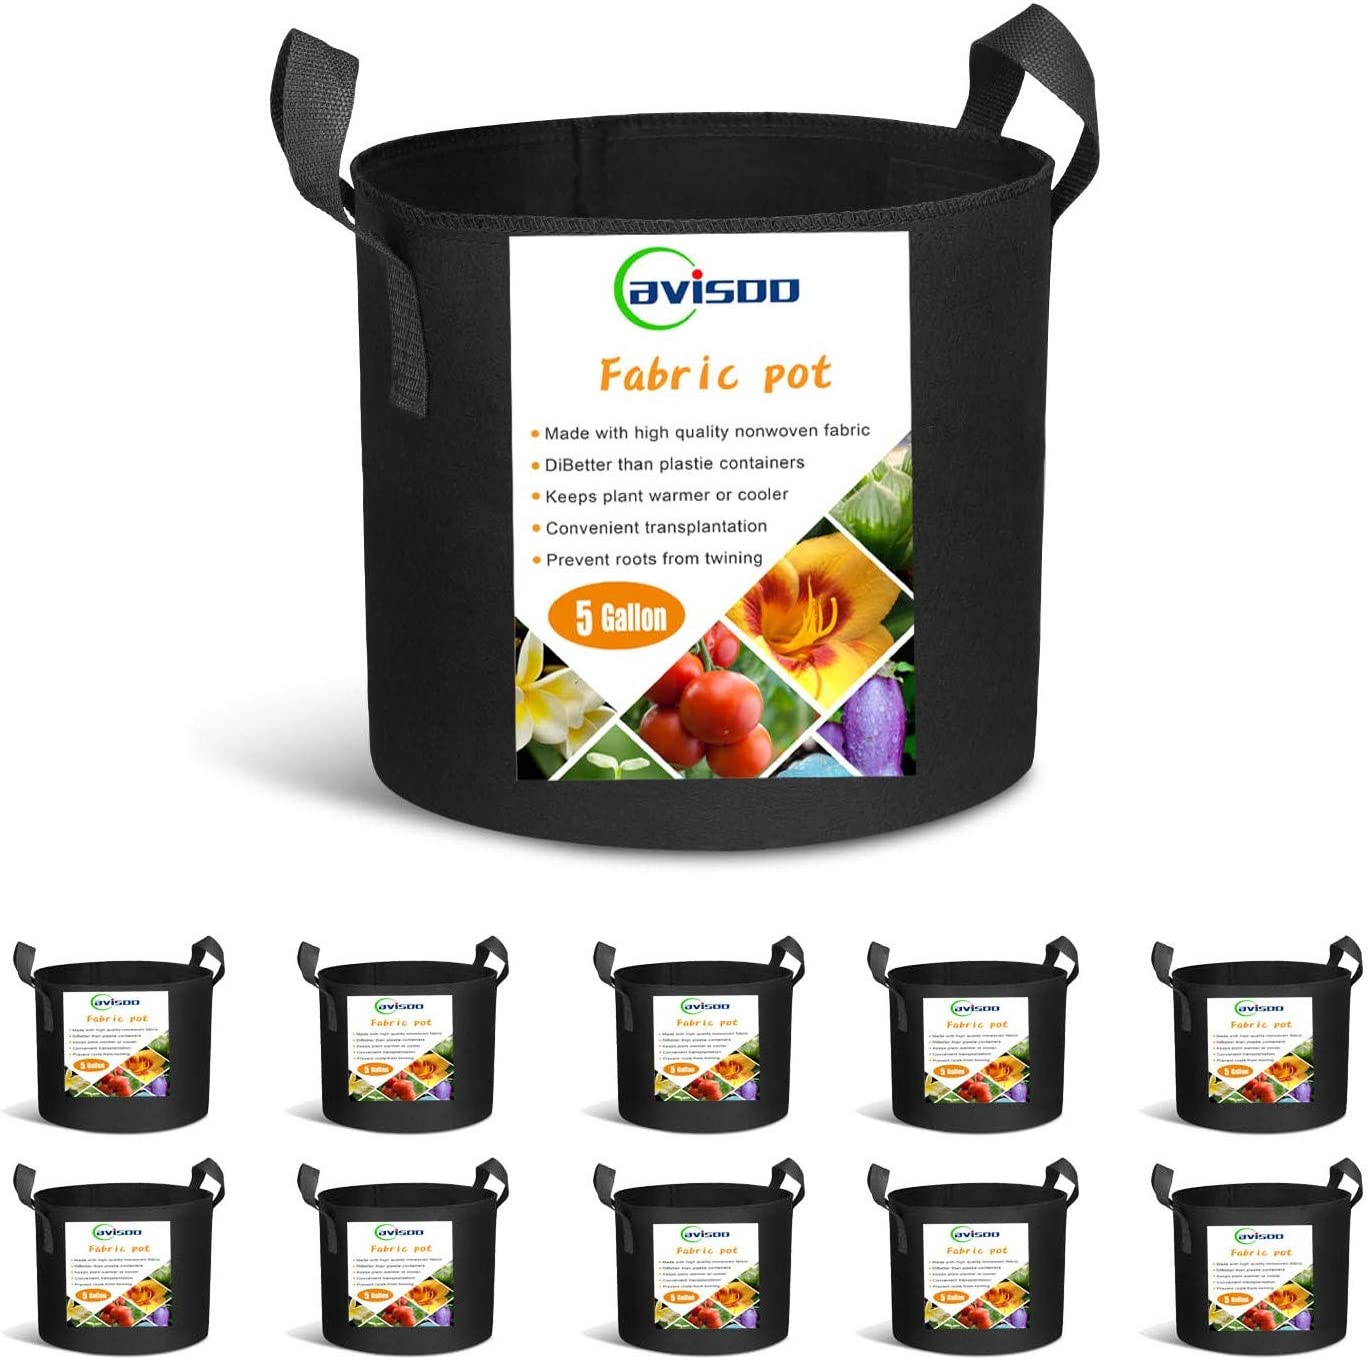 Cavisoo 10-Pack 5 Gallon Plant Grow Bags, Heavy Duty 300G Thickened Non-Woven Aeration Fabric Pots with Reinforced Handles